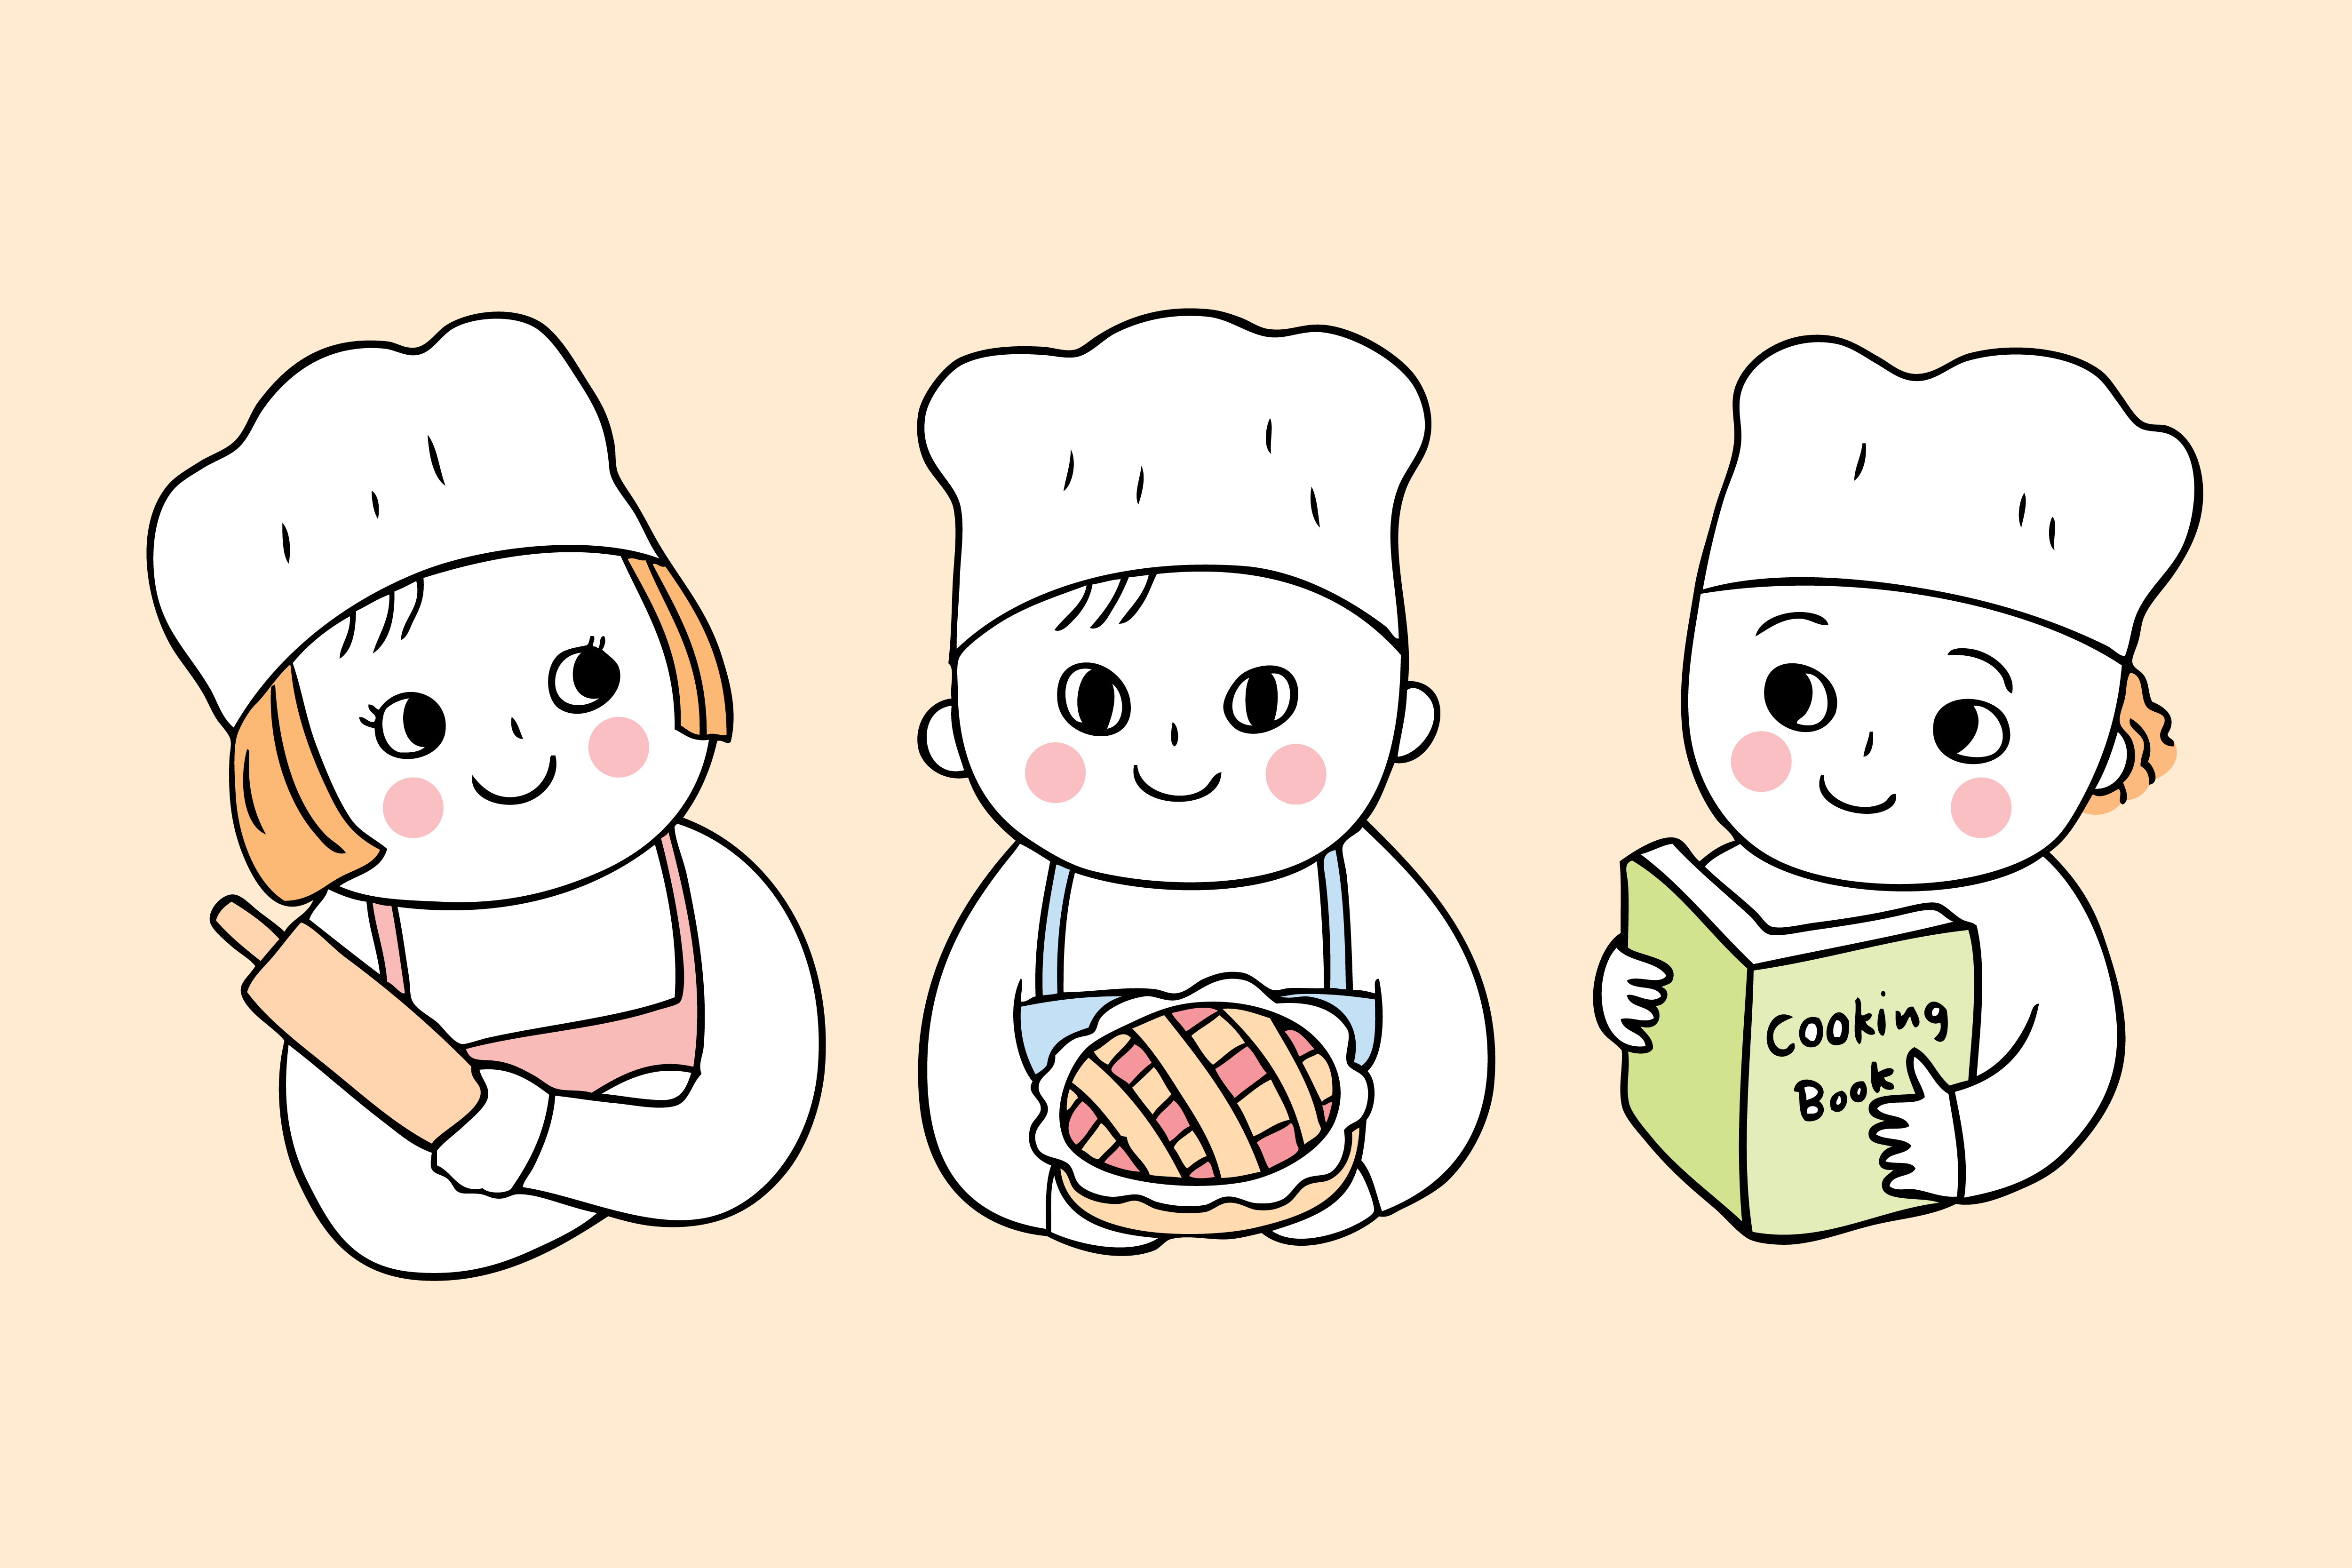 Cartoon Cute Back To School Cooking Class With Three Students Download Free Vectors Clipart Graphics Vector Art